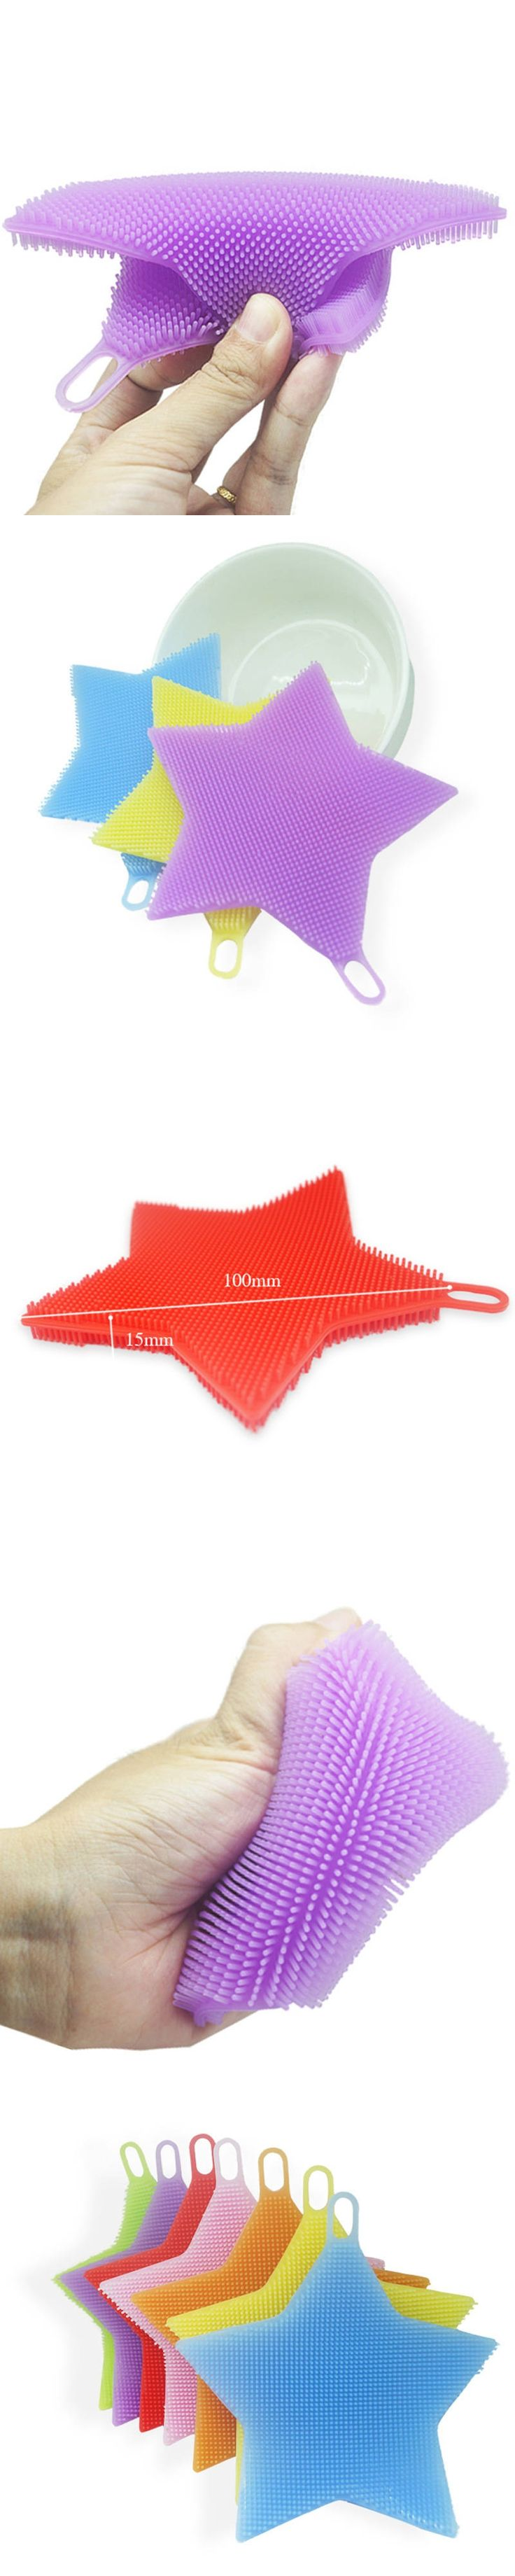 DoreenBeads Household Cleaning Brush Food Grade Silicone Cleaning Appliance Star Pattern For Bowl Dish Random Color 1PC